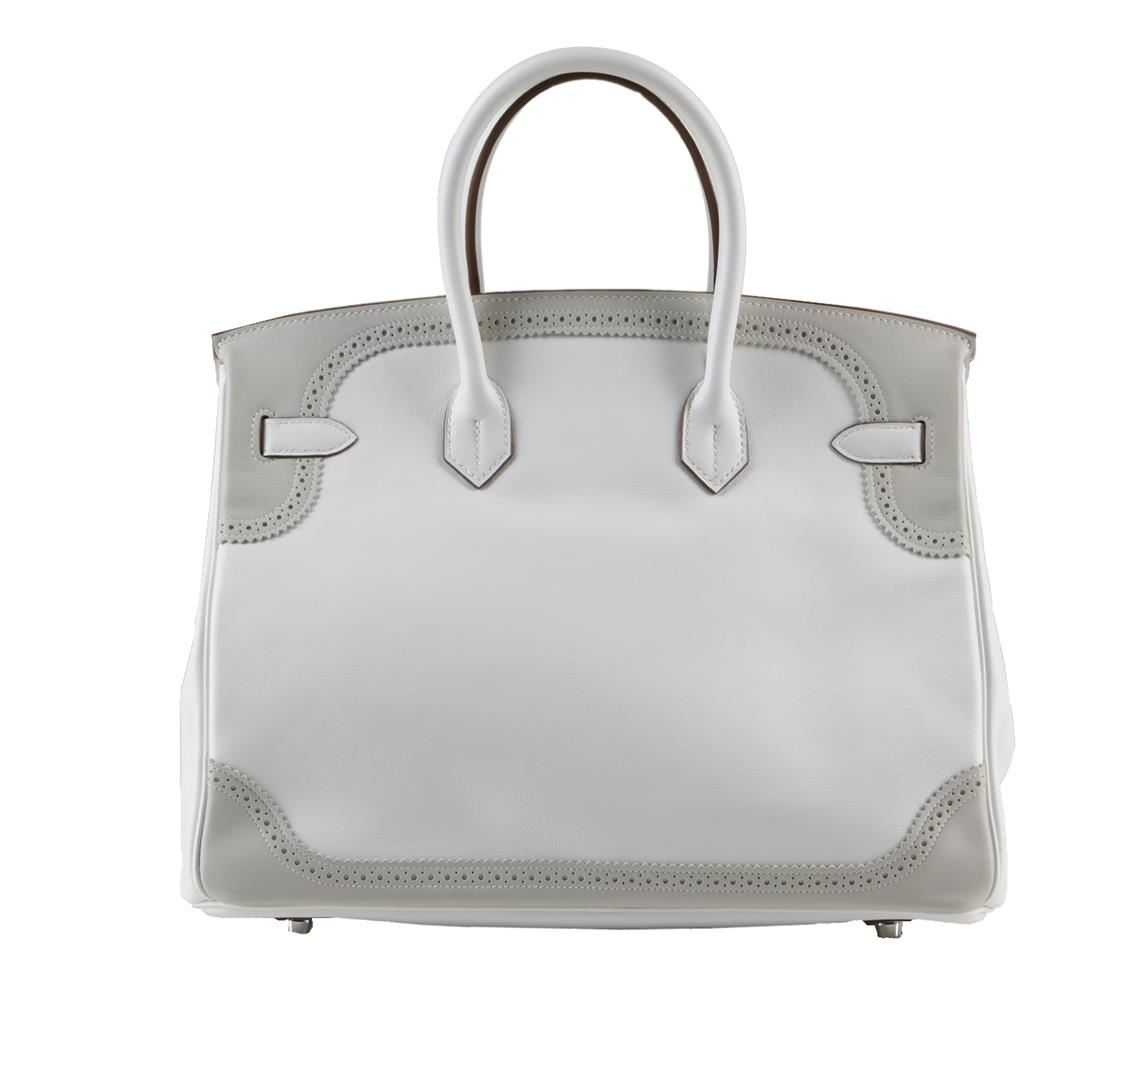 ... canada image 2 hermes 35cm white and gris perle swift leather ghillies  birkin bag 9558f 525a7 ... 71226e5ca5544